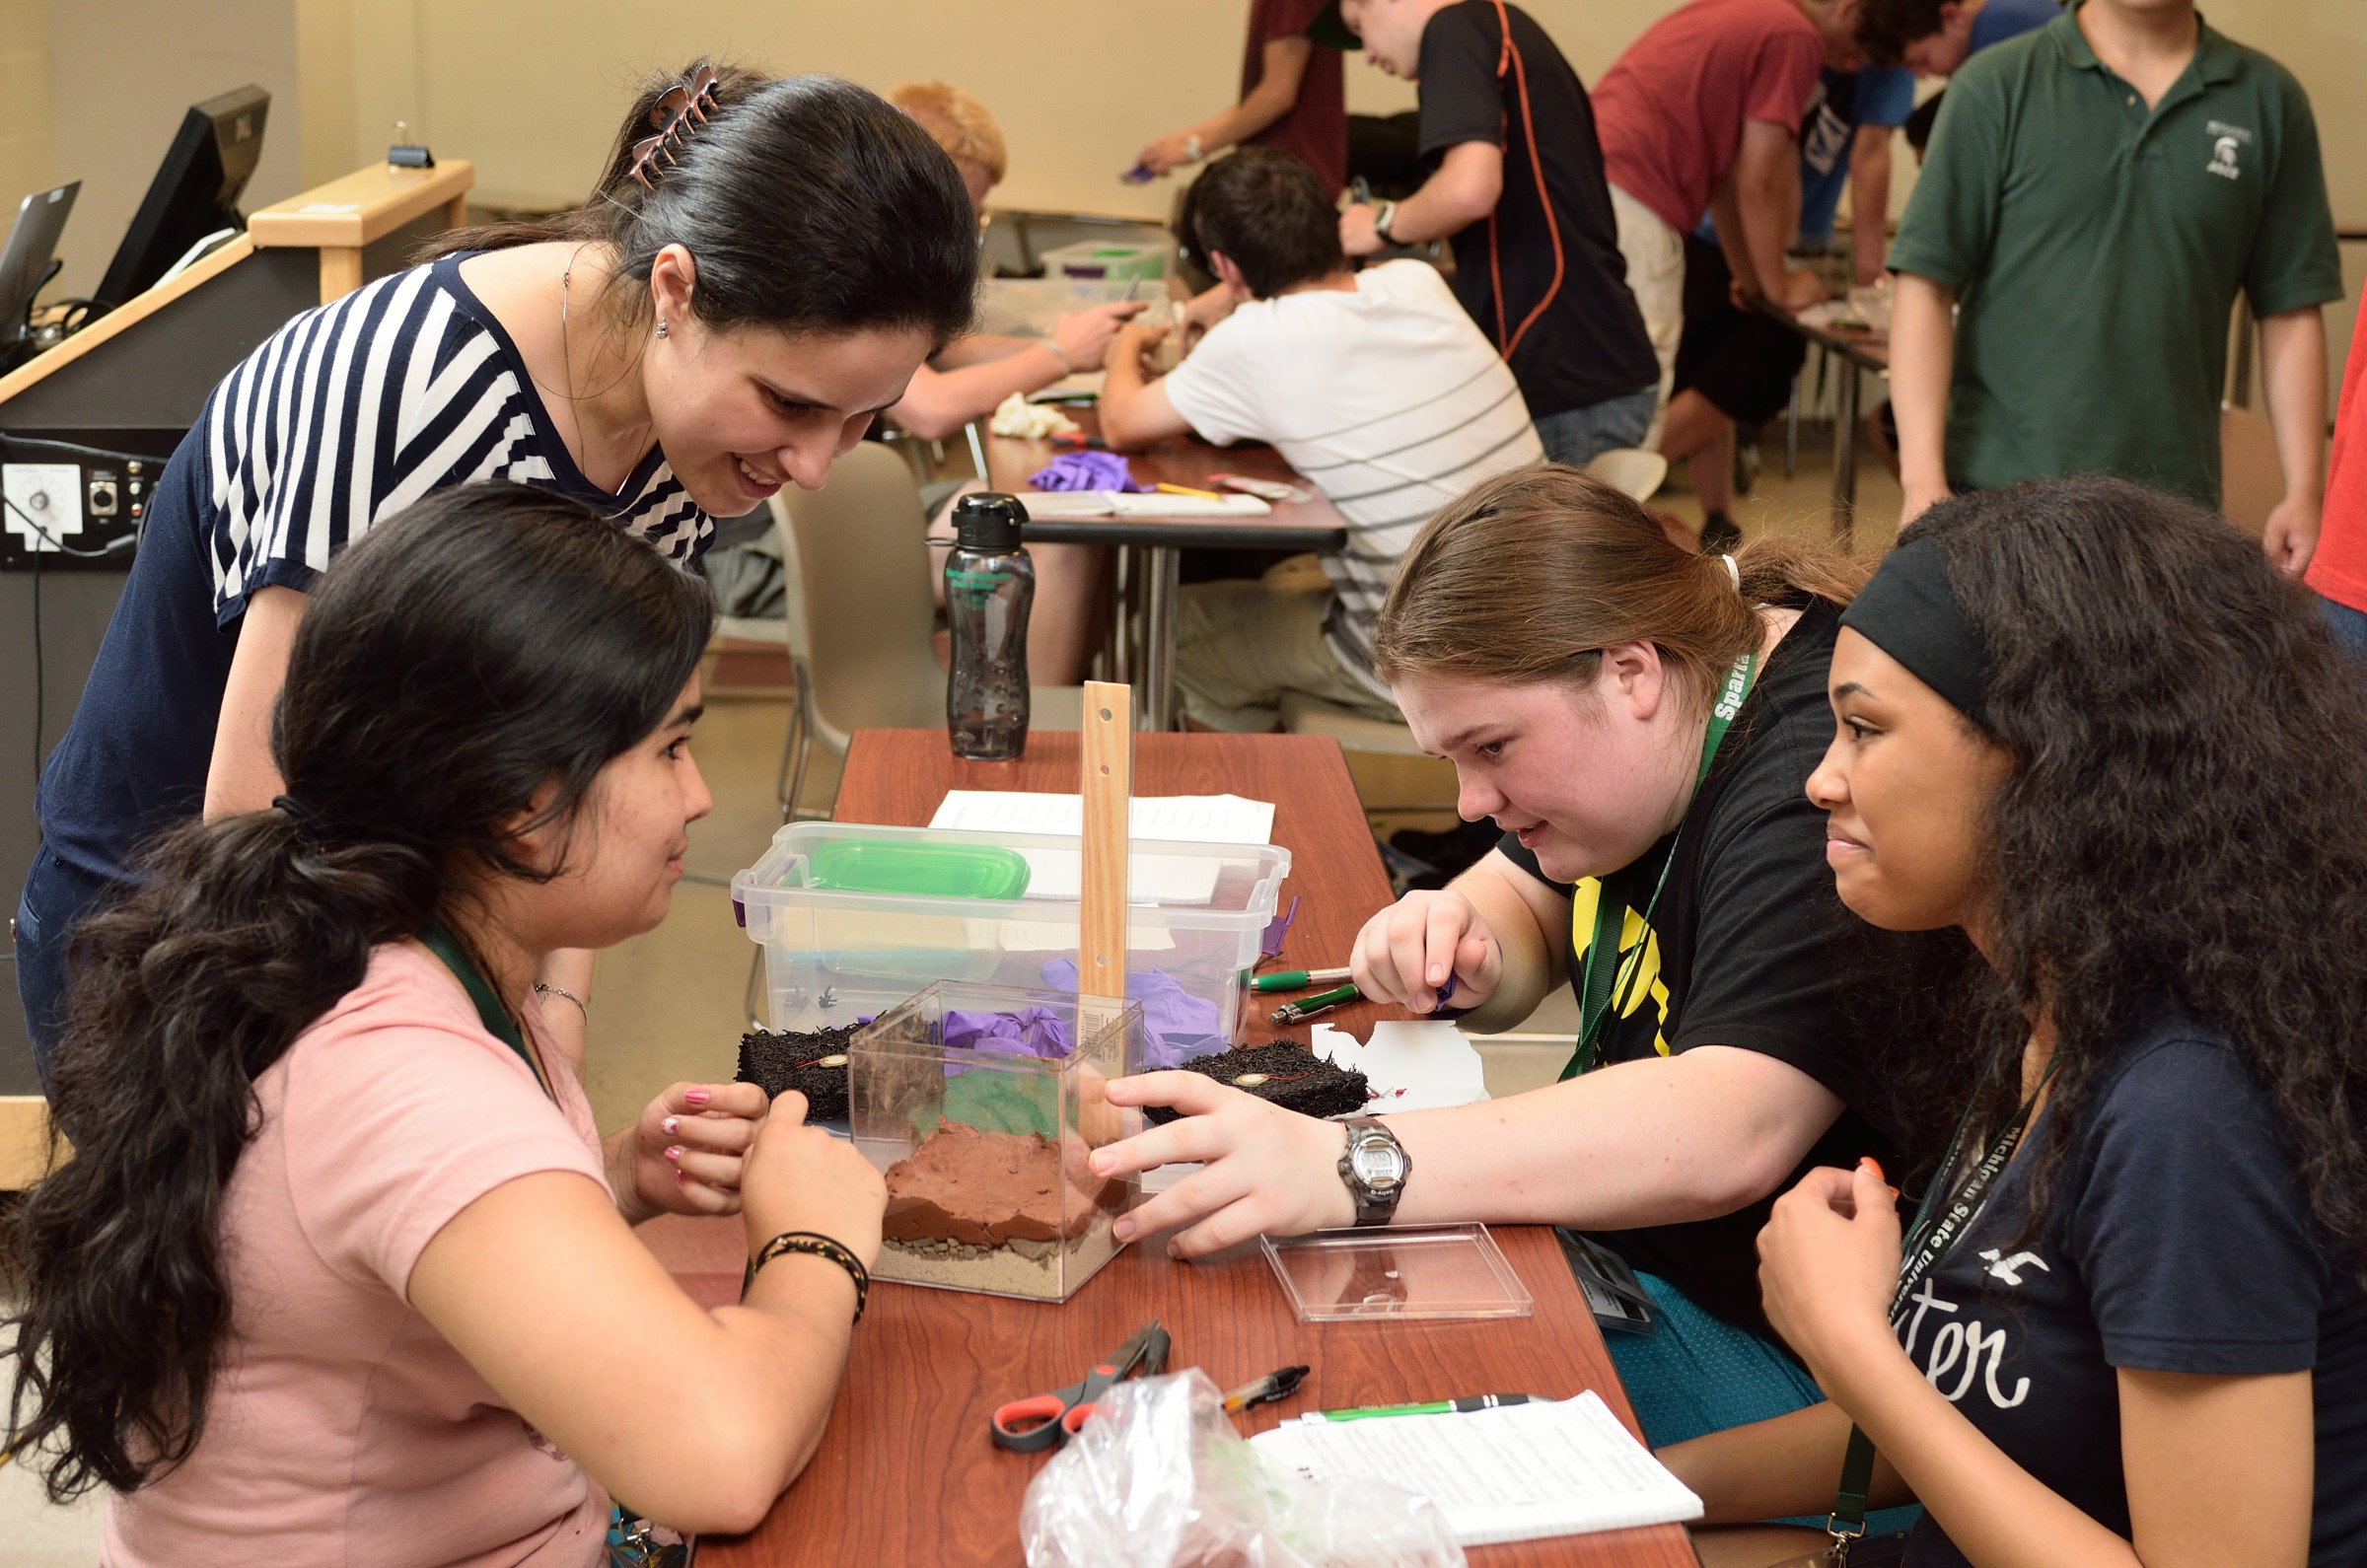 When Imen Zaabar of Michigan State University isn't doing research as an assistant professor of civil engineering, she helps students build a road in a box to help them explore engineering design.